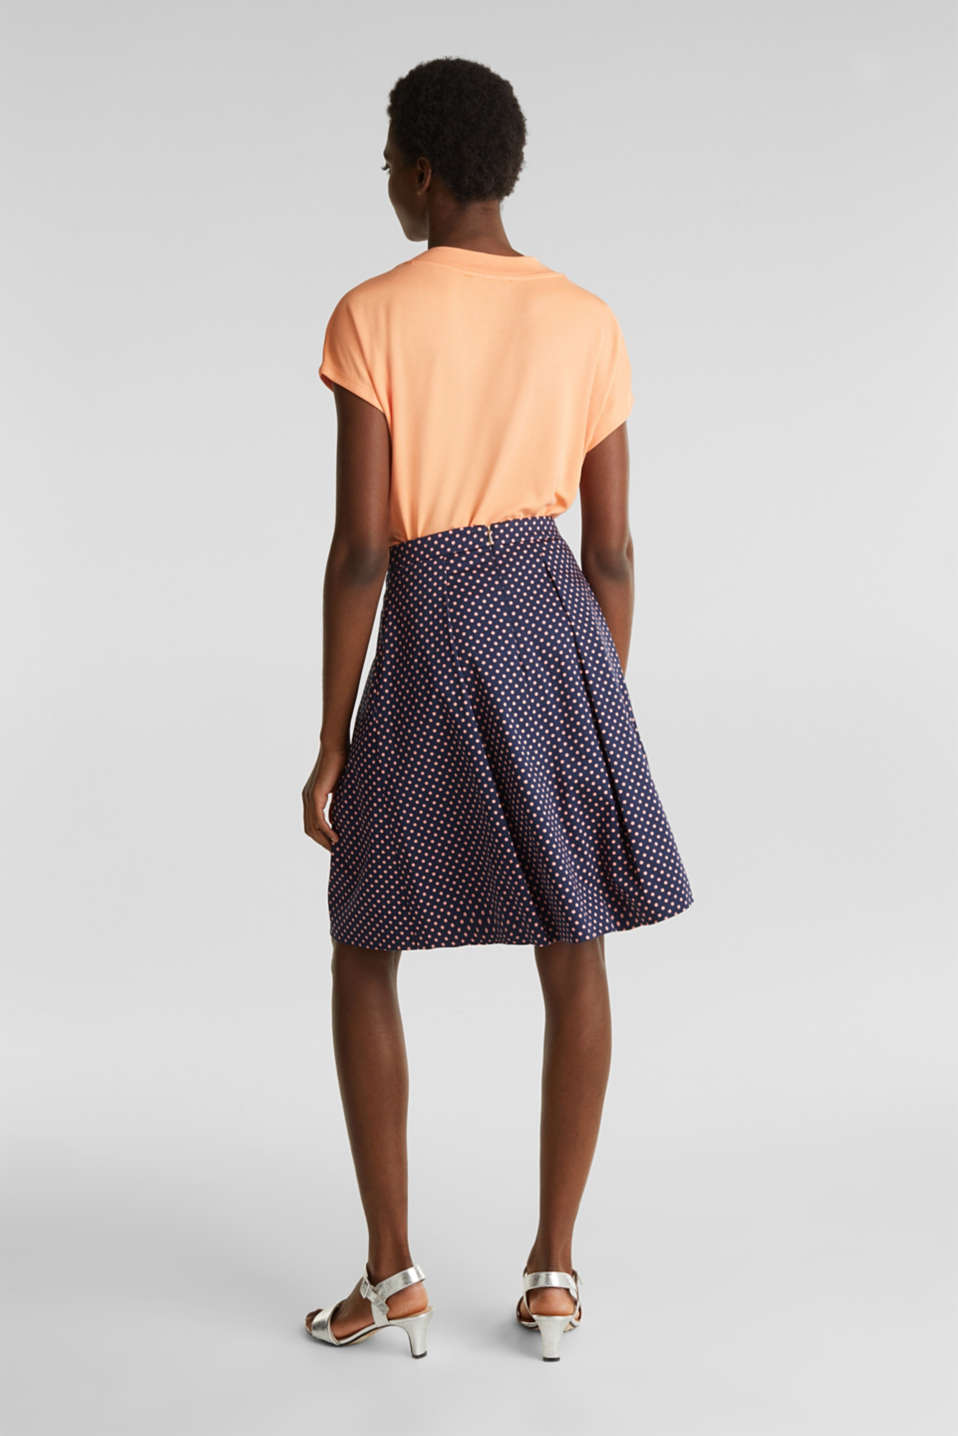 Satined polka dot skirt with stretch, NAVY 4, detail image number 3